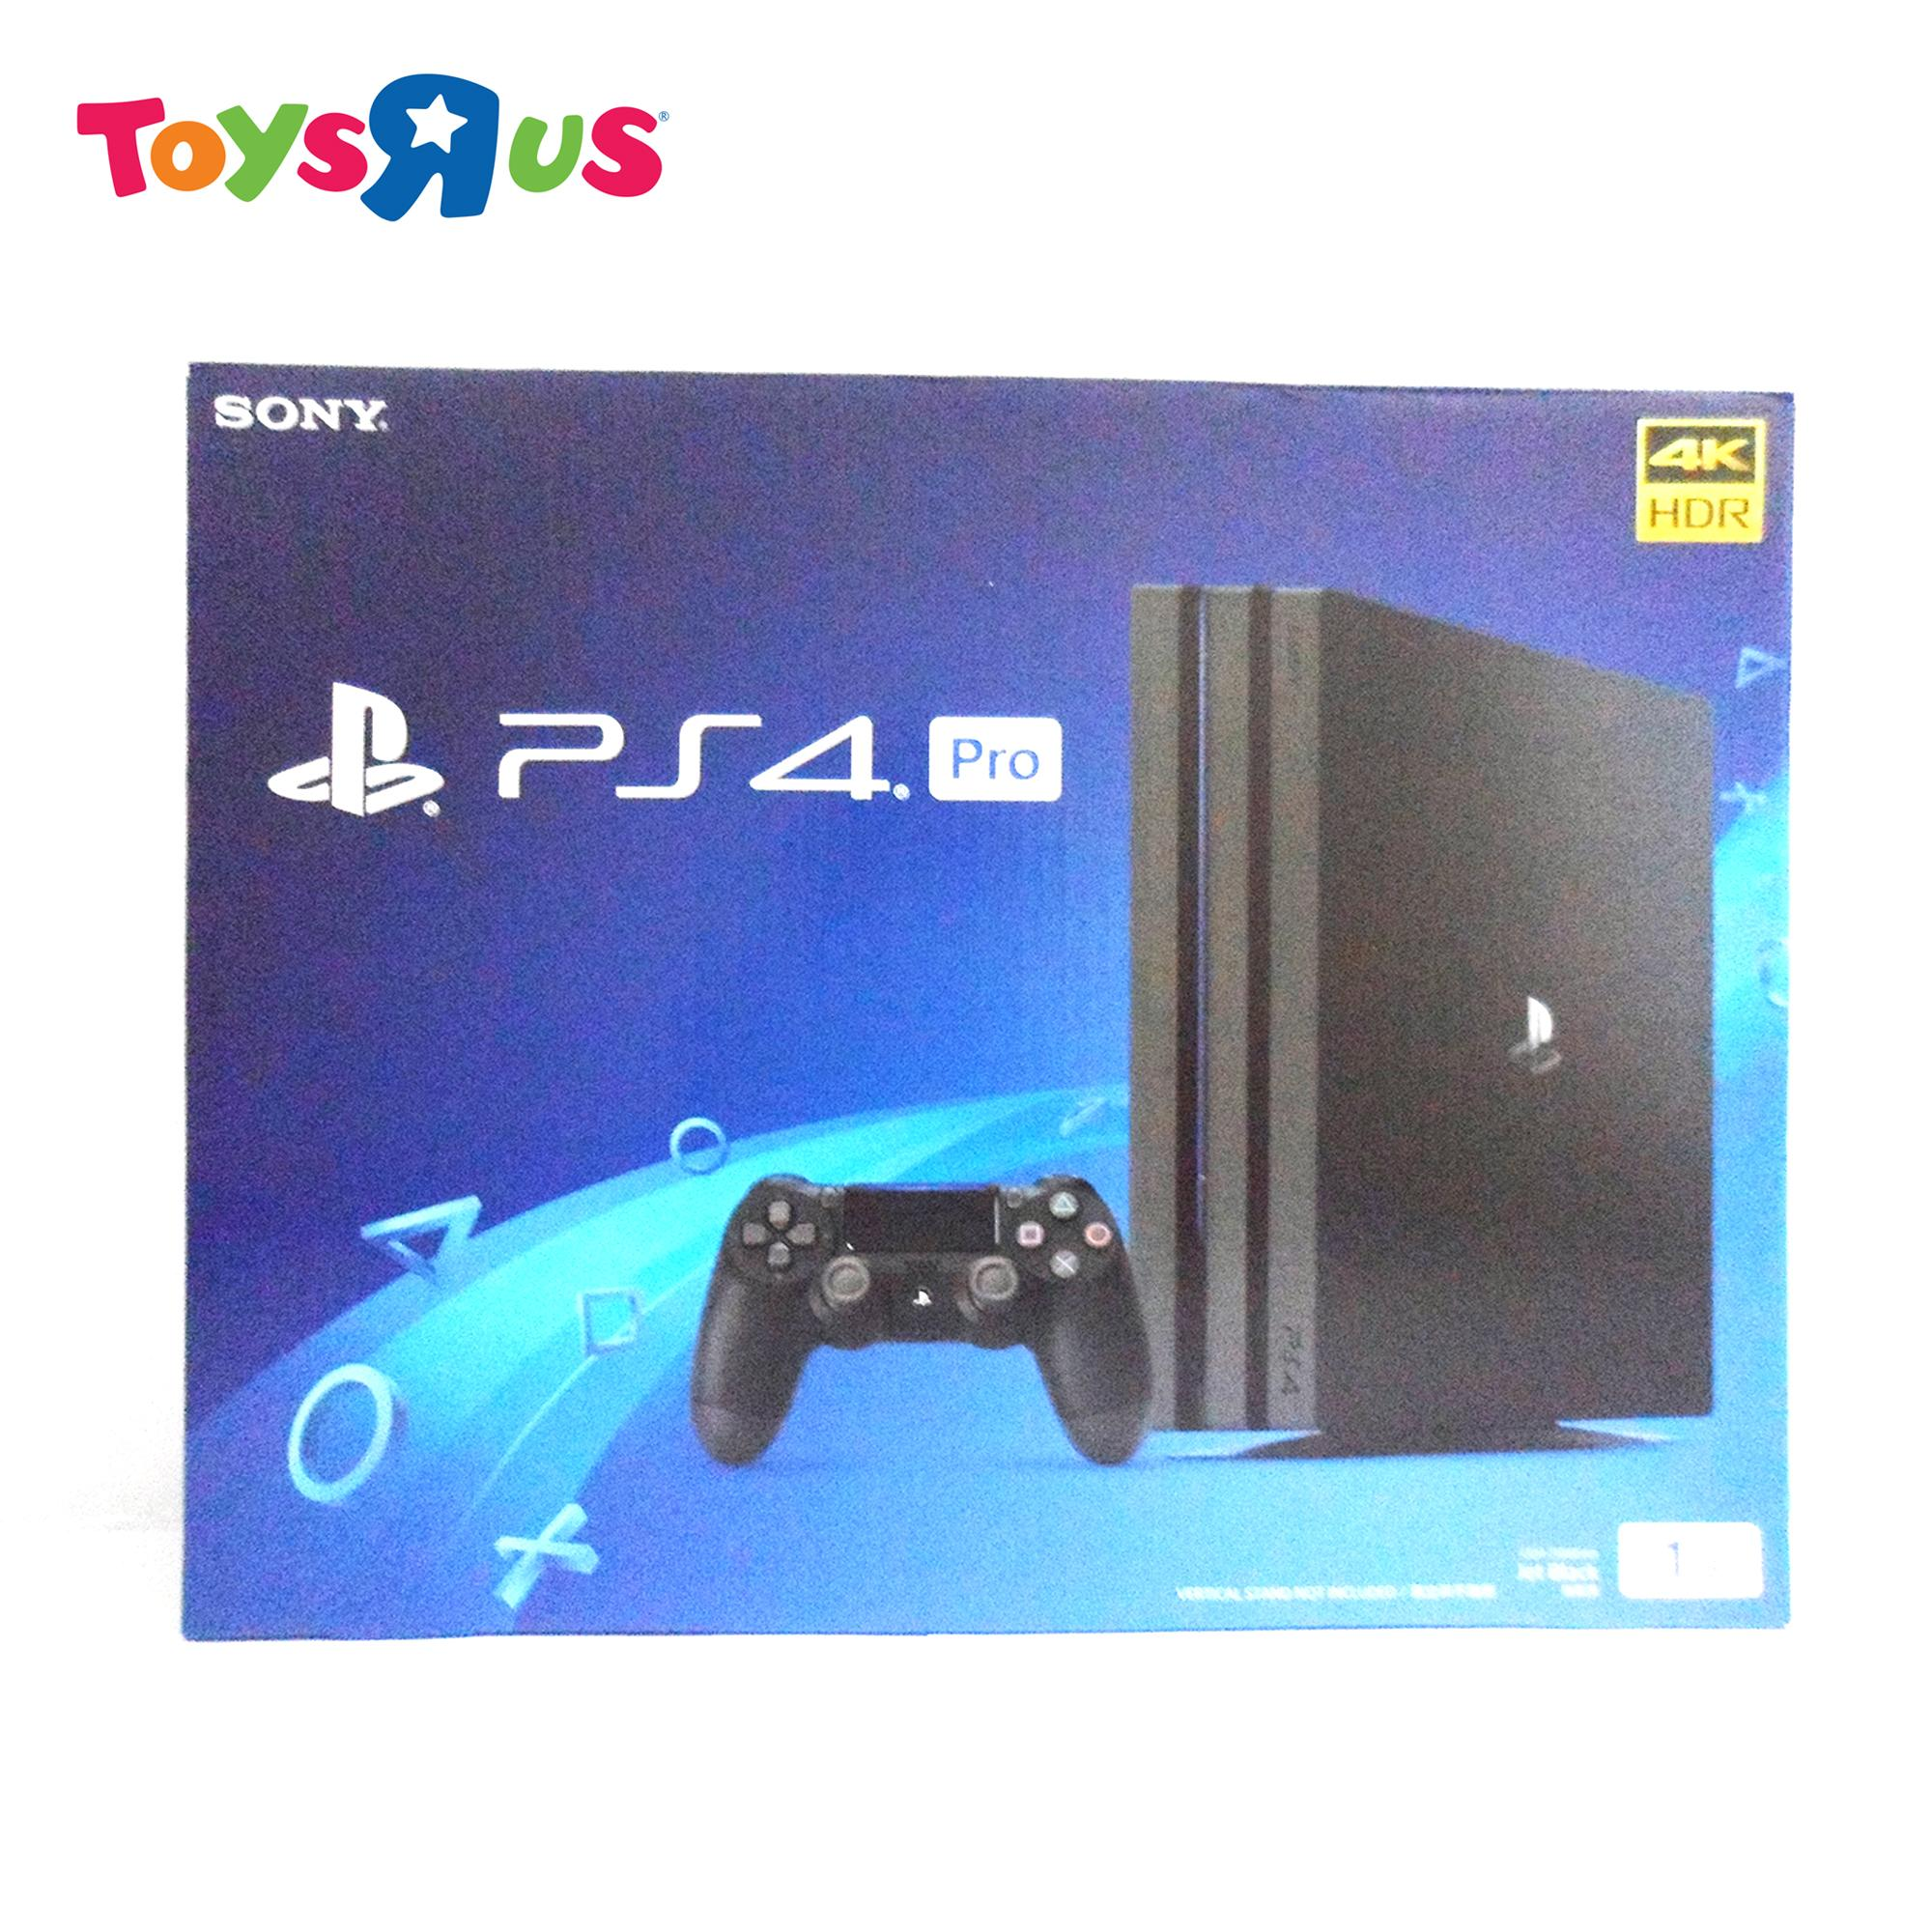 Sony Philippines Game Consoles For Sale Prices Reviews Ps4 Gt Sport Standard Edition Reg3 Pro 1tb